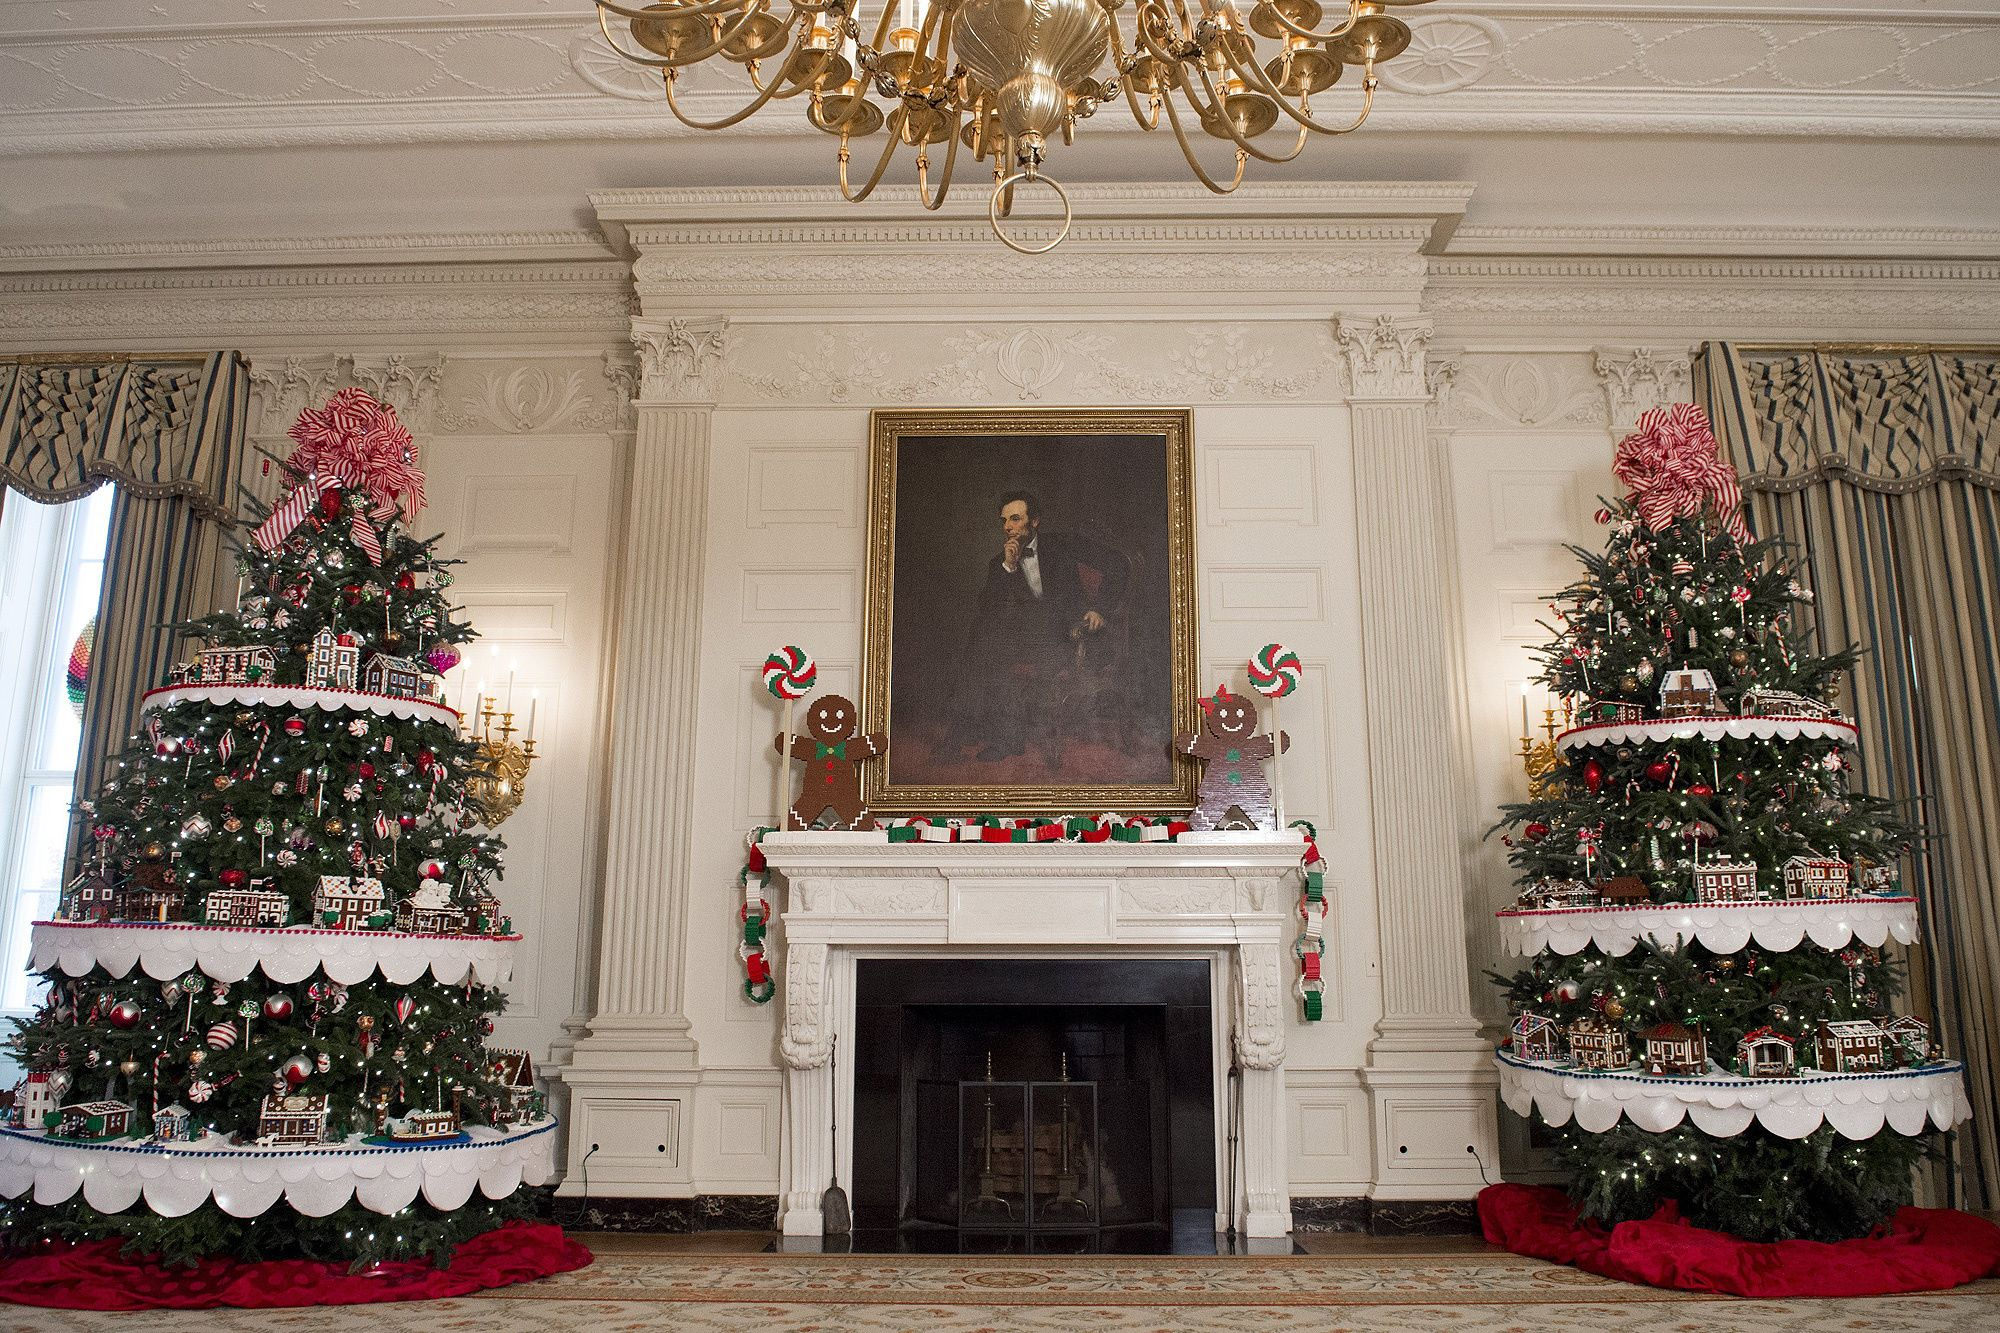 Inside The White House Holiday Decorations Pom Pom Replicas Of The